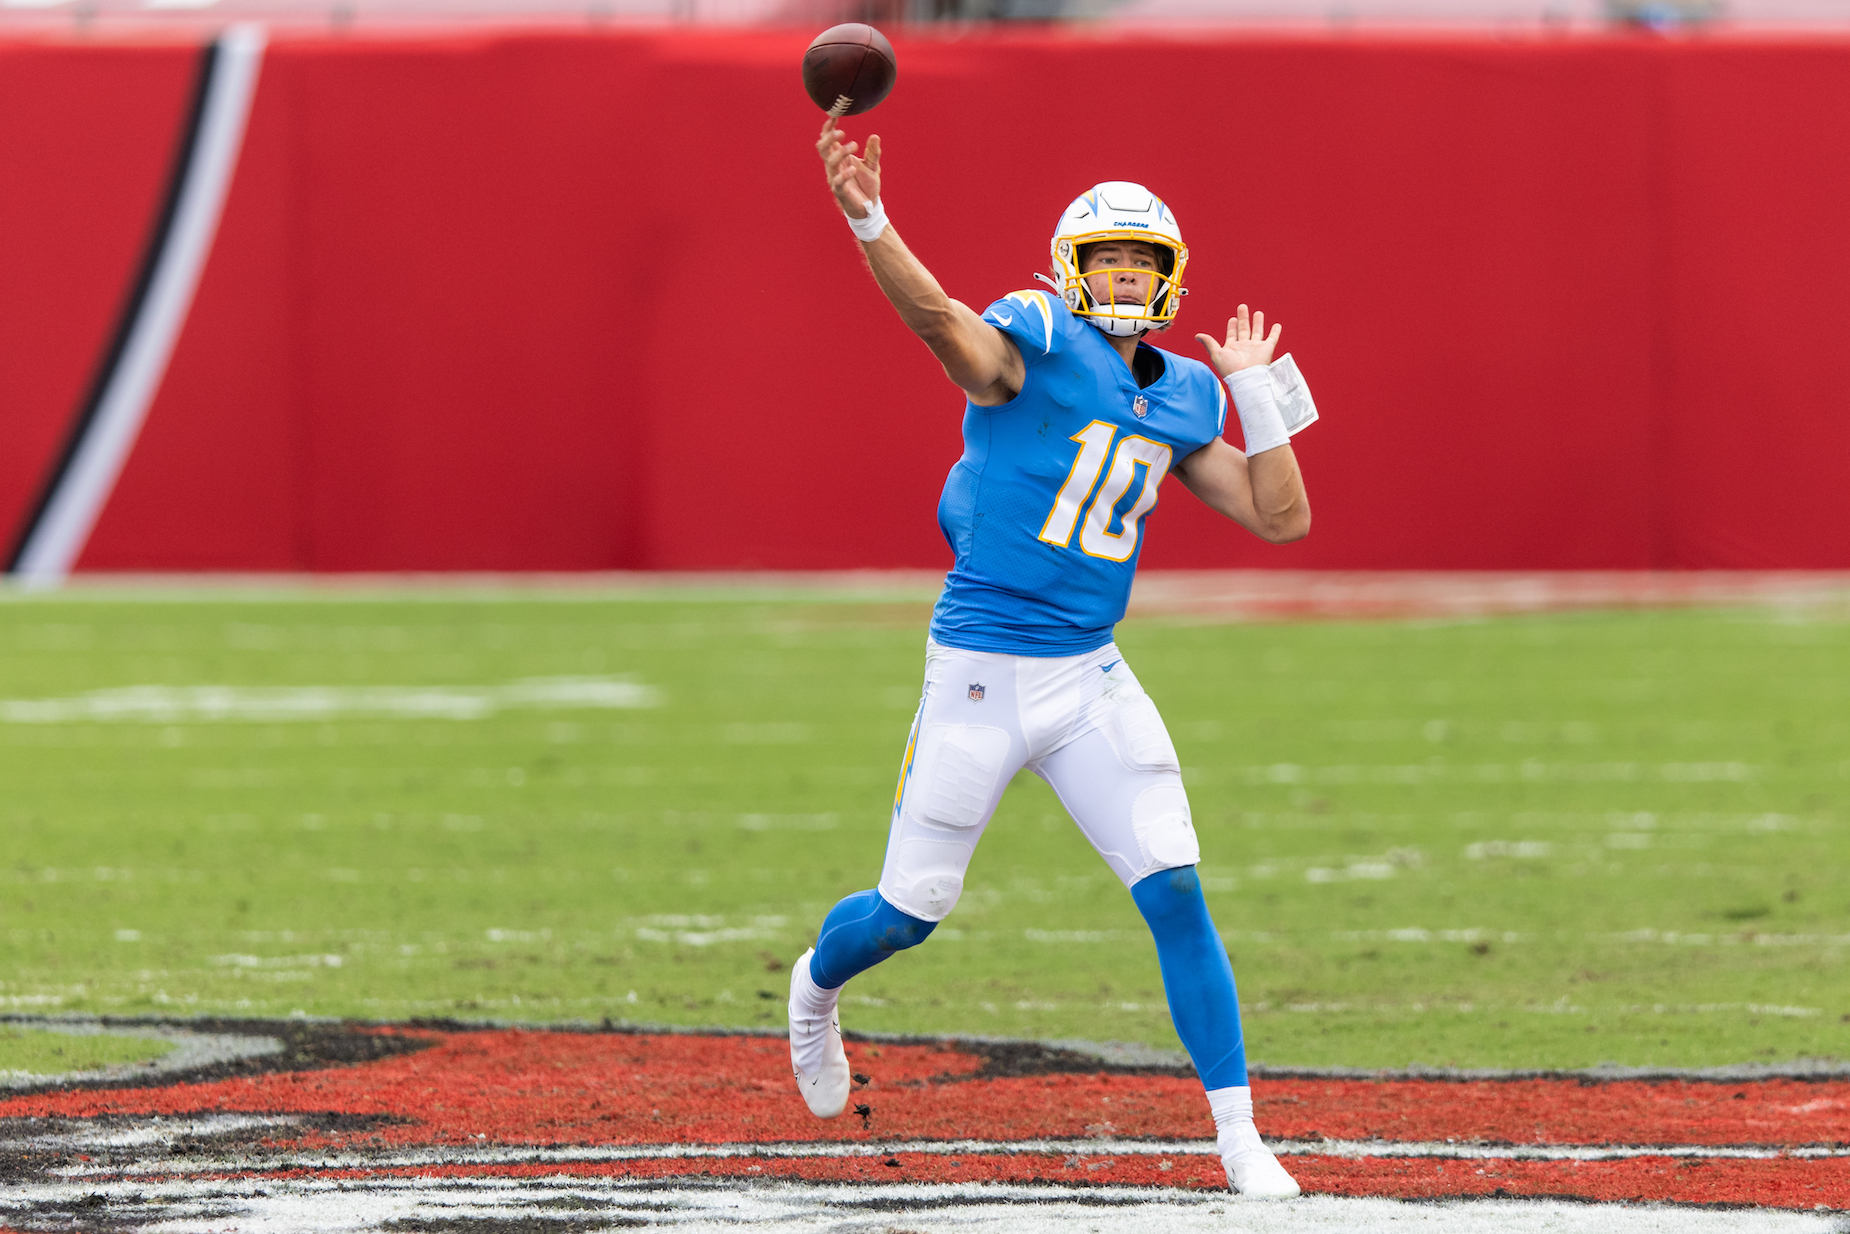 While Justin Herbert has only played a handful of games for the LA Chargers, he already looks like one of the best quarterbacks in franchise history.